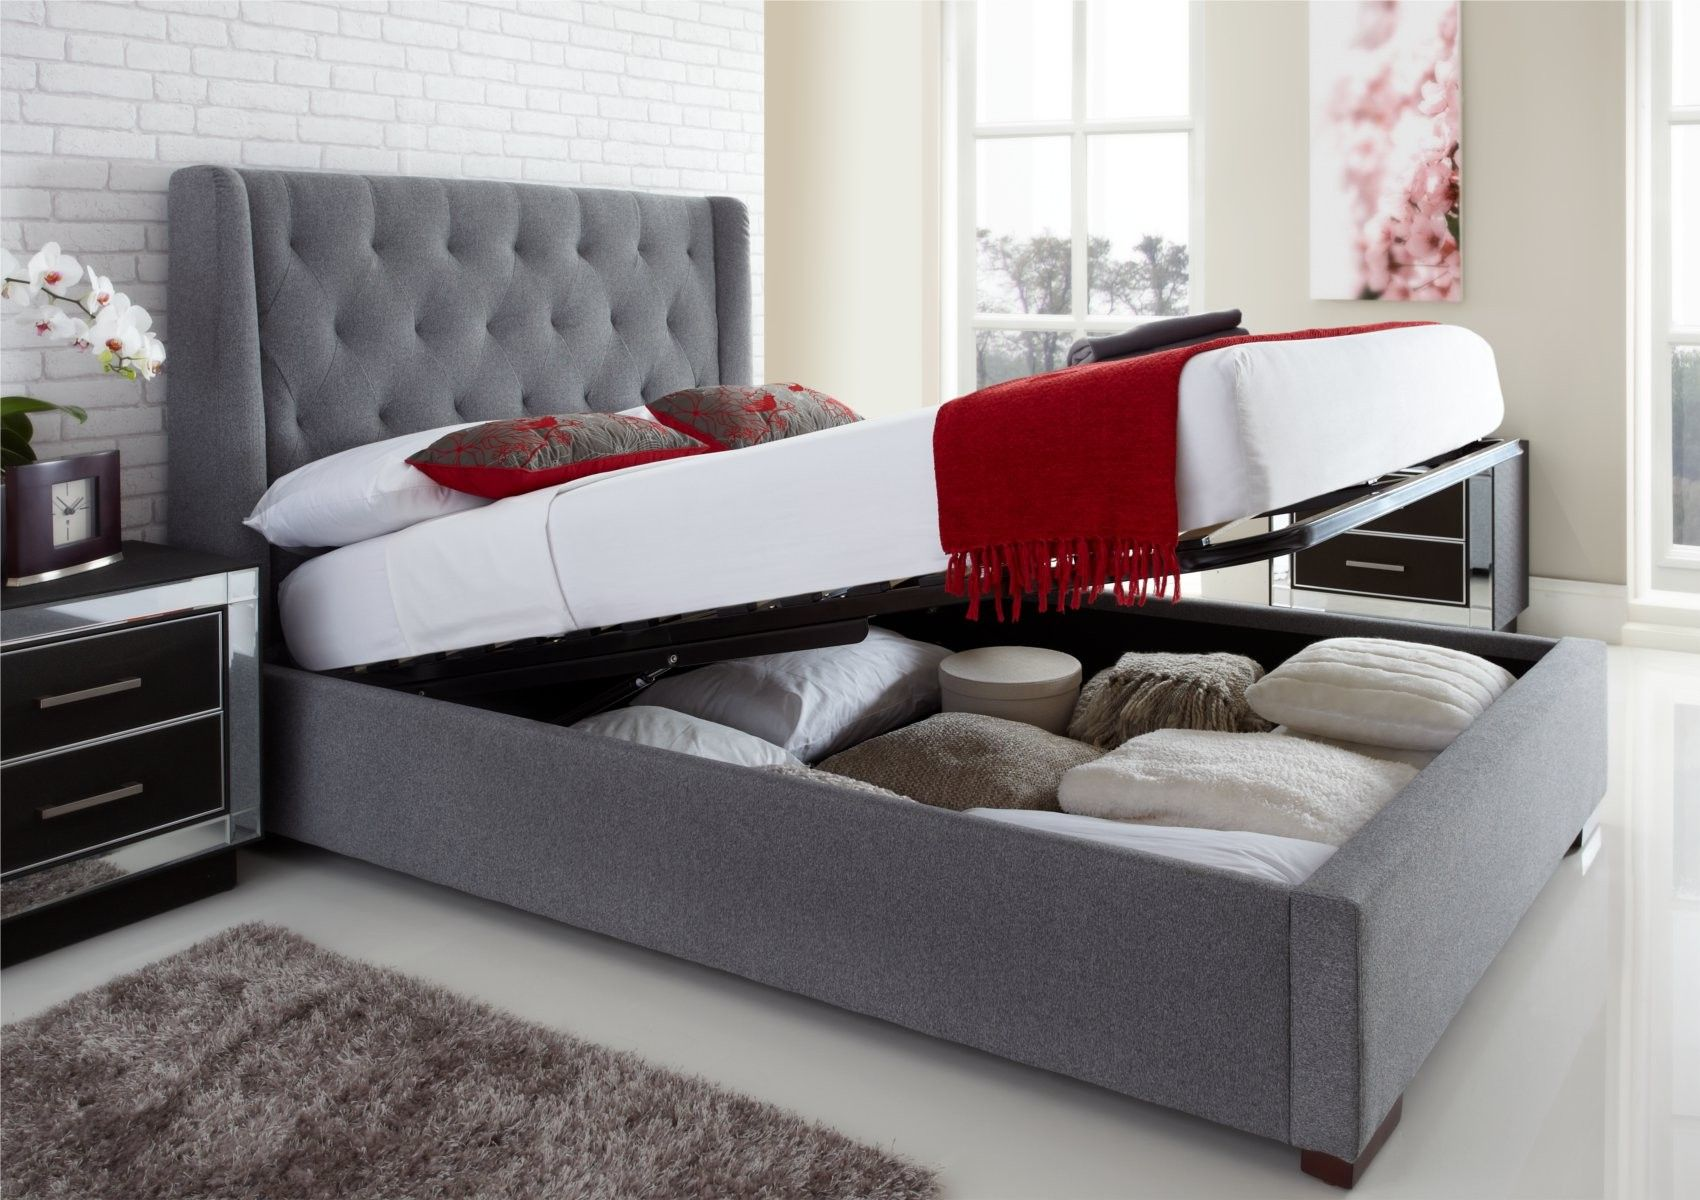 Richmond Upholstered Winged Ottoman Storage Bed Ottoman Beds